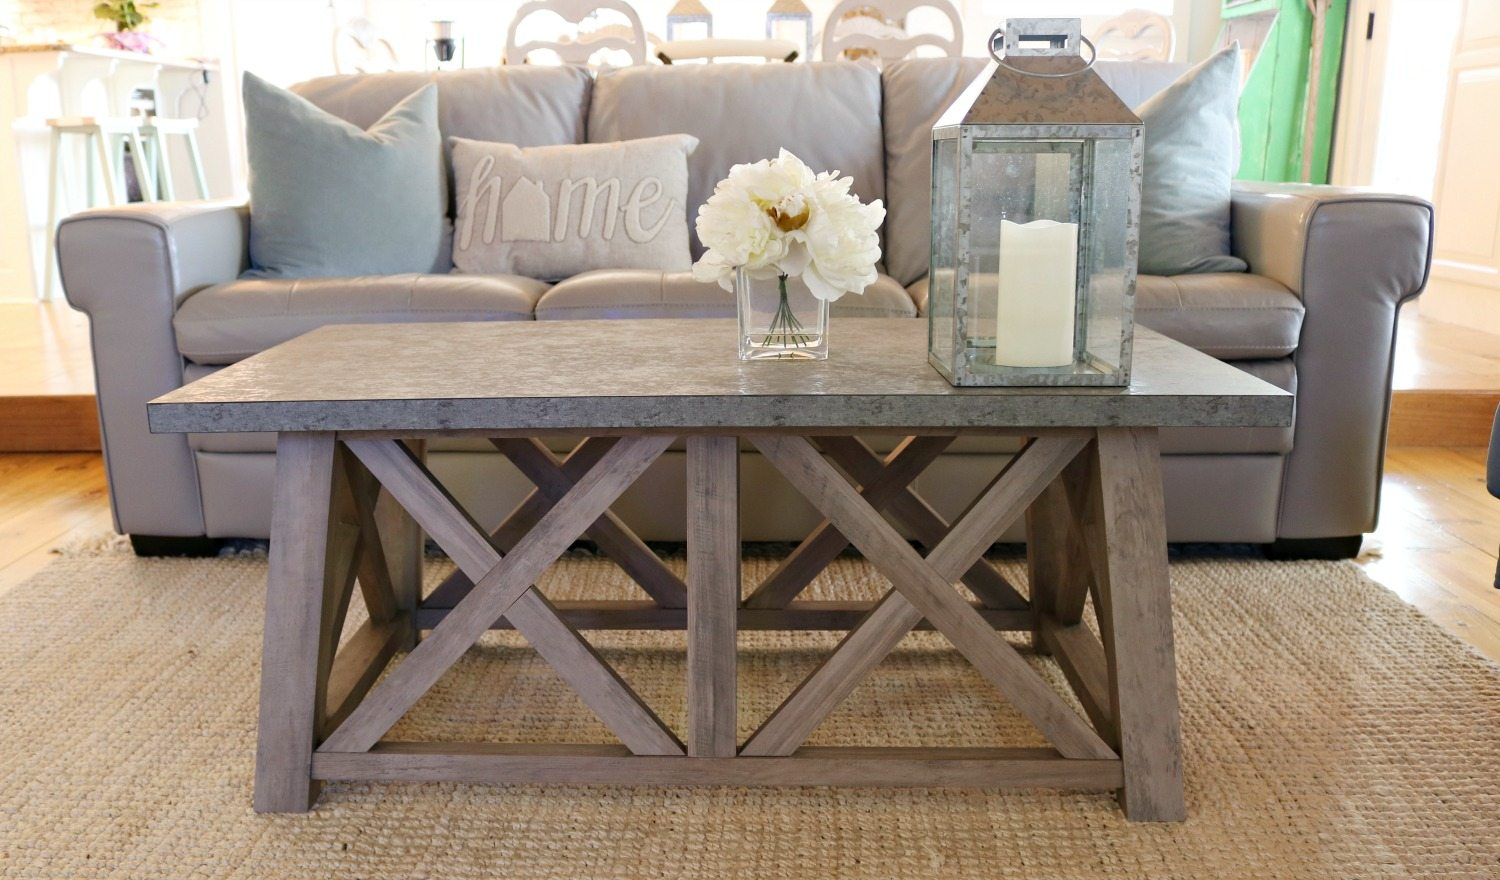 Farmhouse style coffee table - perfect for any living room.